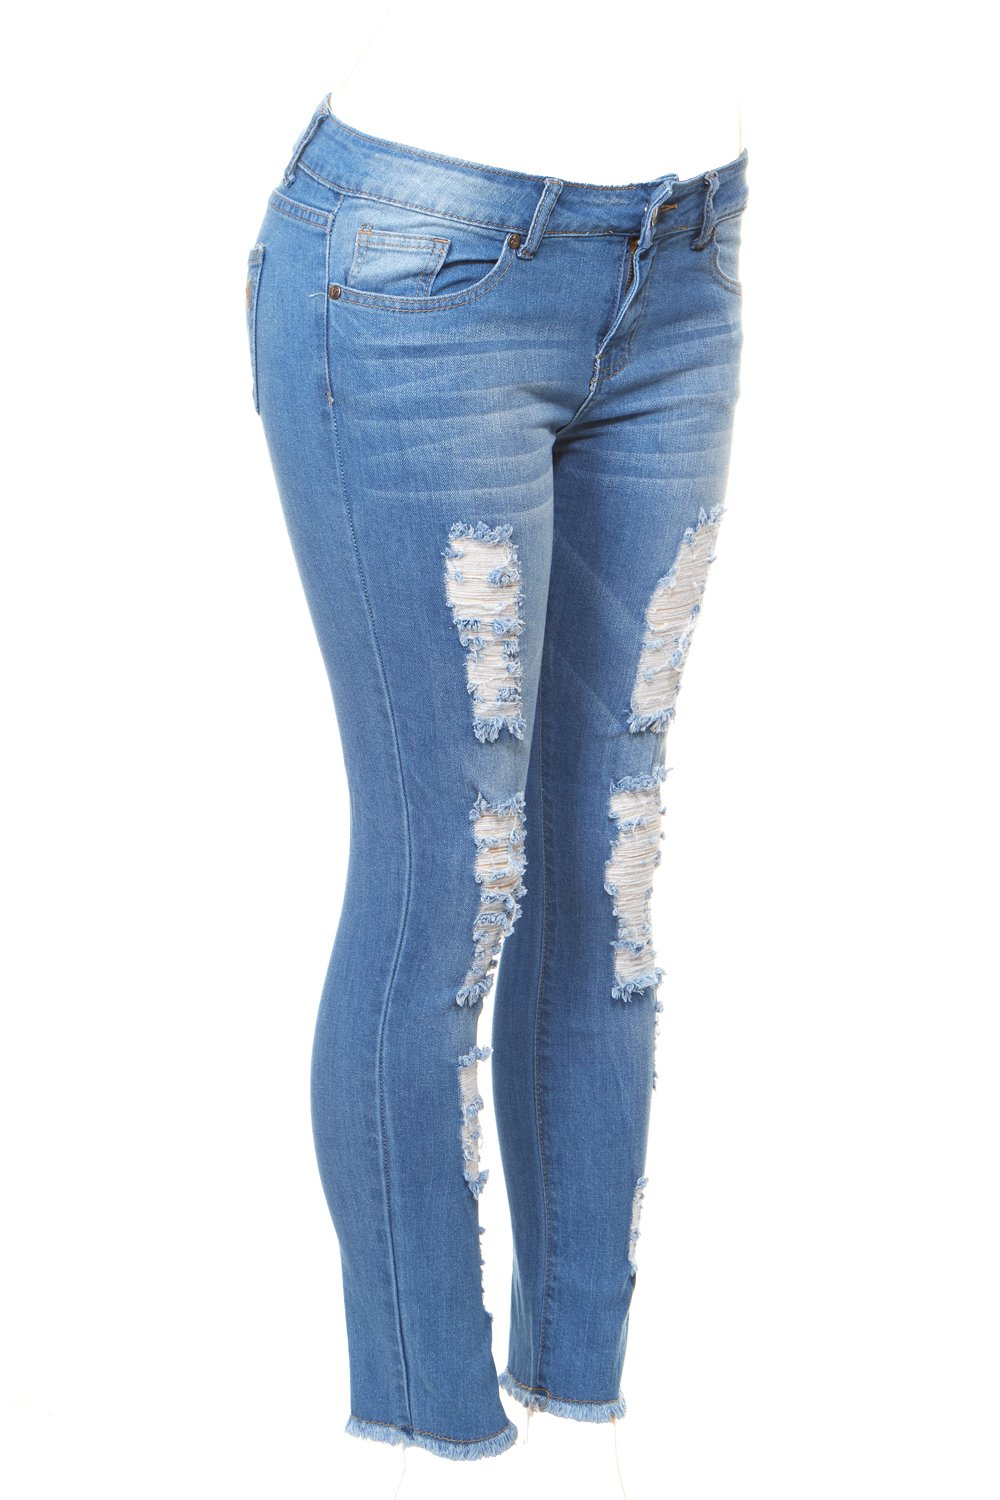 Cover Girl Women's Distressed Torn Plus Size Skinny Jeans Blue 18W